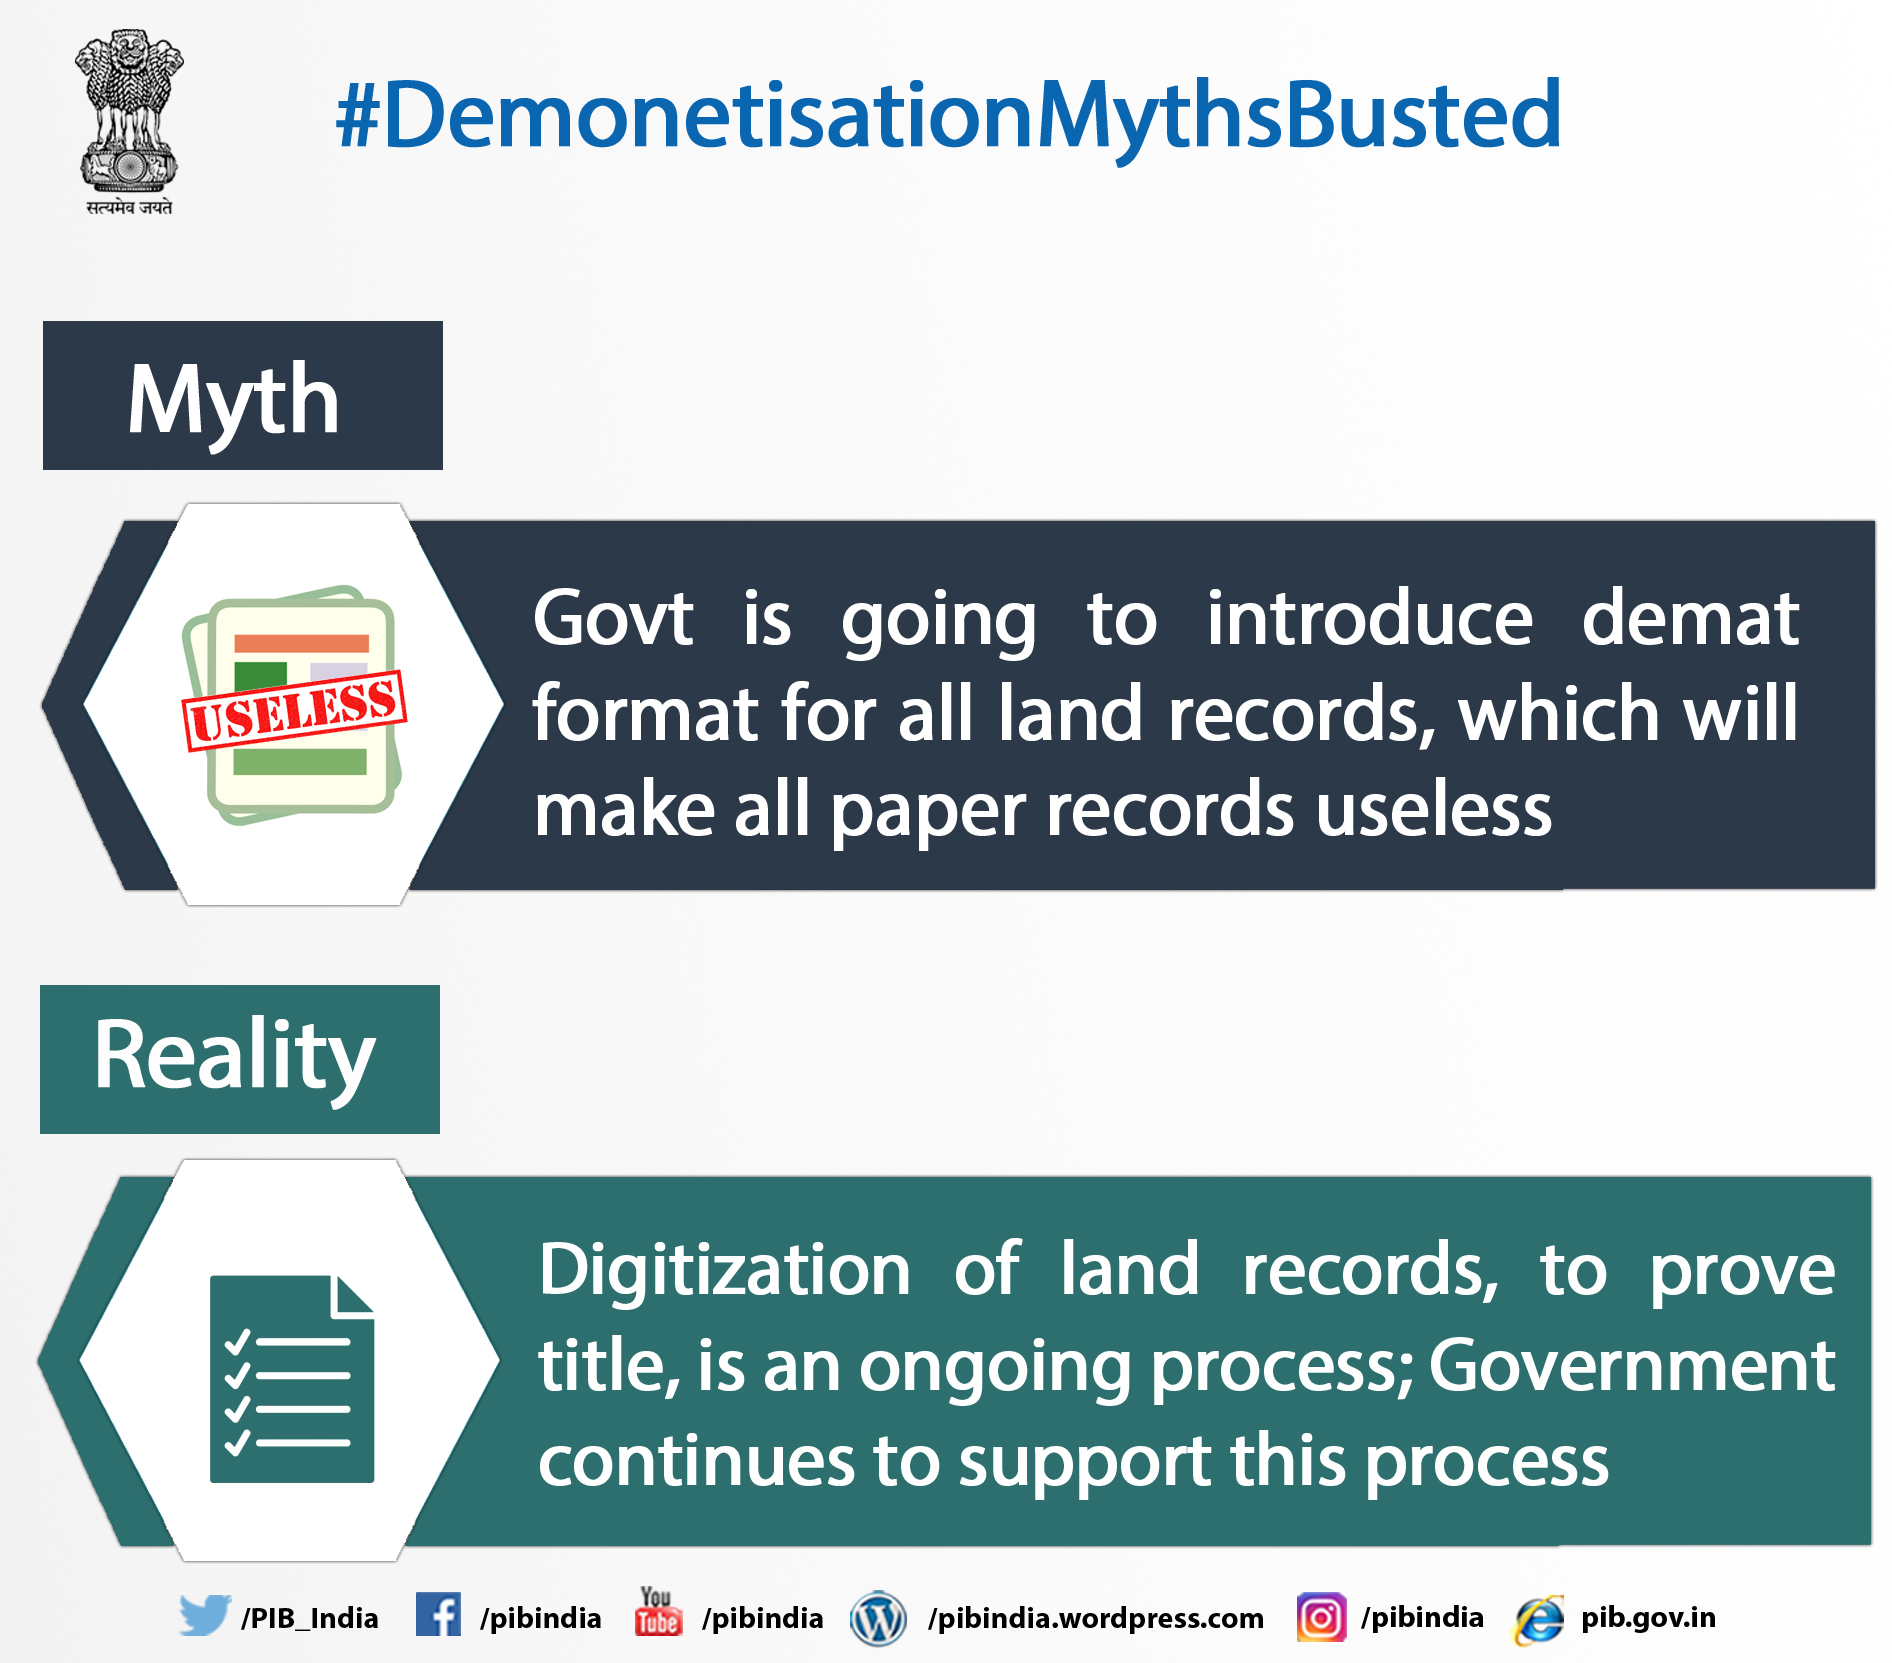 Govt is going to introduce  demat format for all land records, whick will make all paper records useless